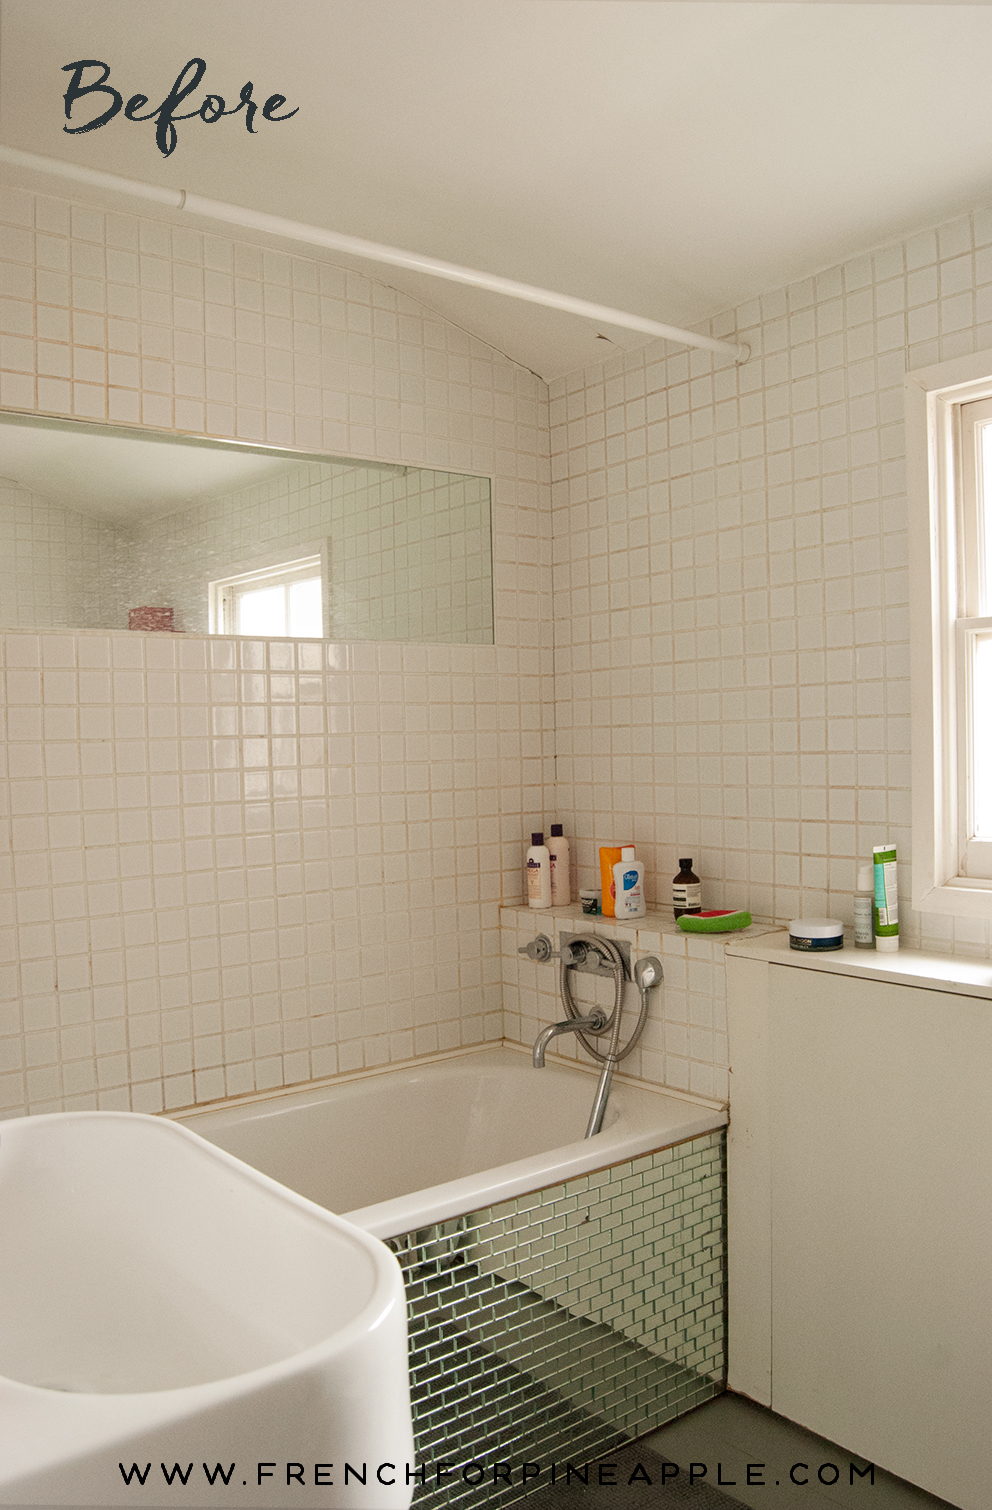 A Mini Bathroom Makeover - French For Pineapple Blog